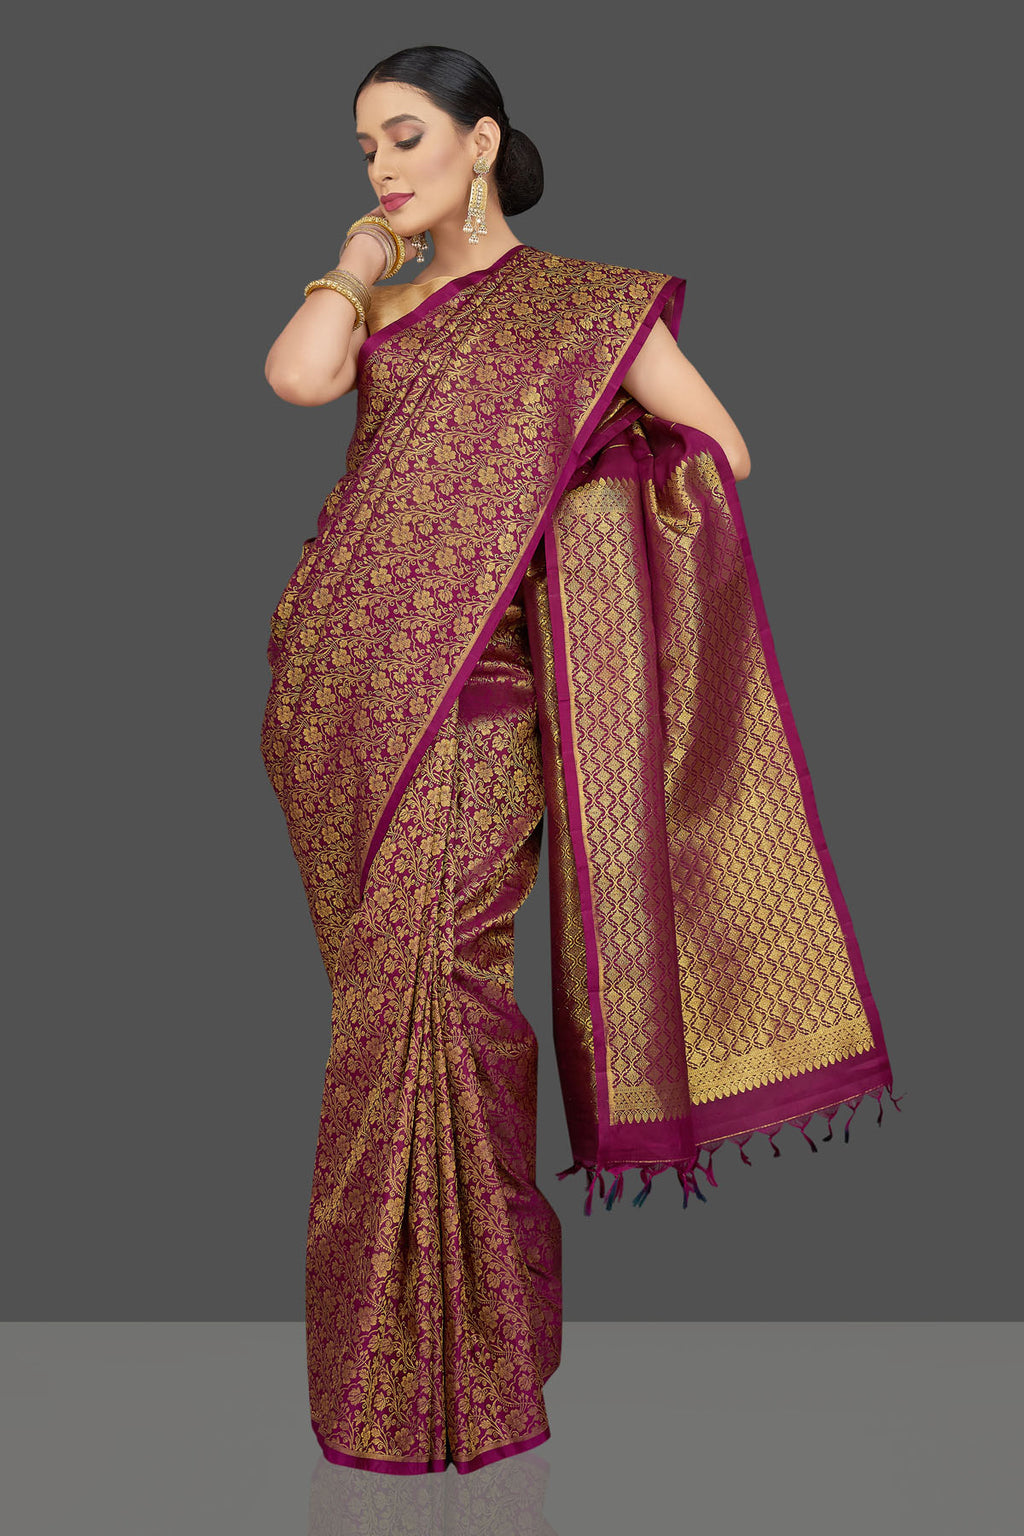 Buy stunning magenta Kanjivaram sari online in USA with overall zari work. Look beautiful on weddings and special occasions in stunning Kanchipuram saris, pure silk sarees, handwoven saris from Pure Elegance Indian fashion store in USA.-full view